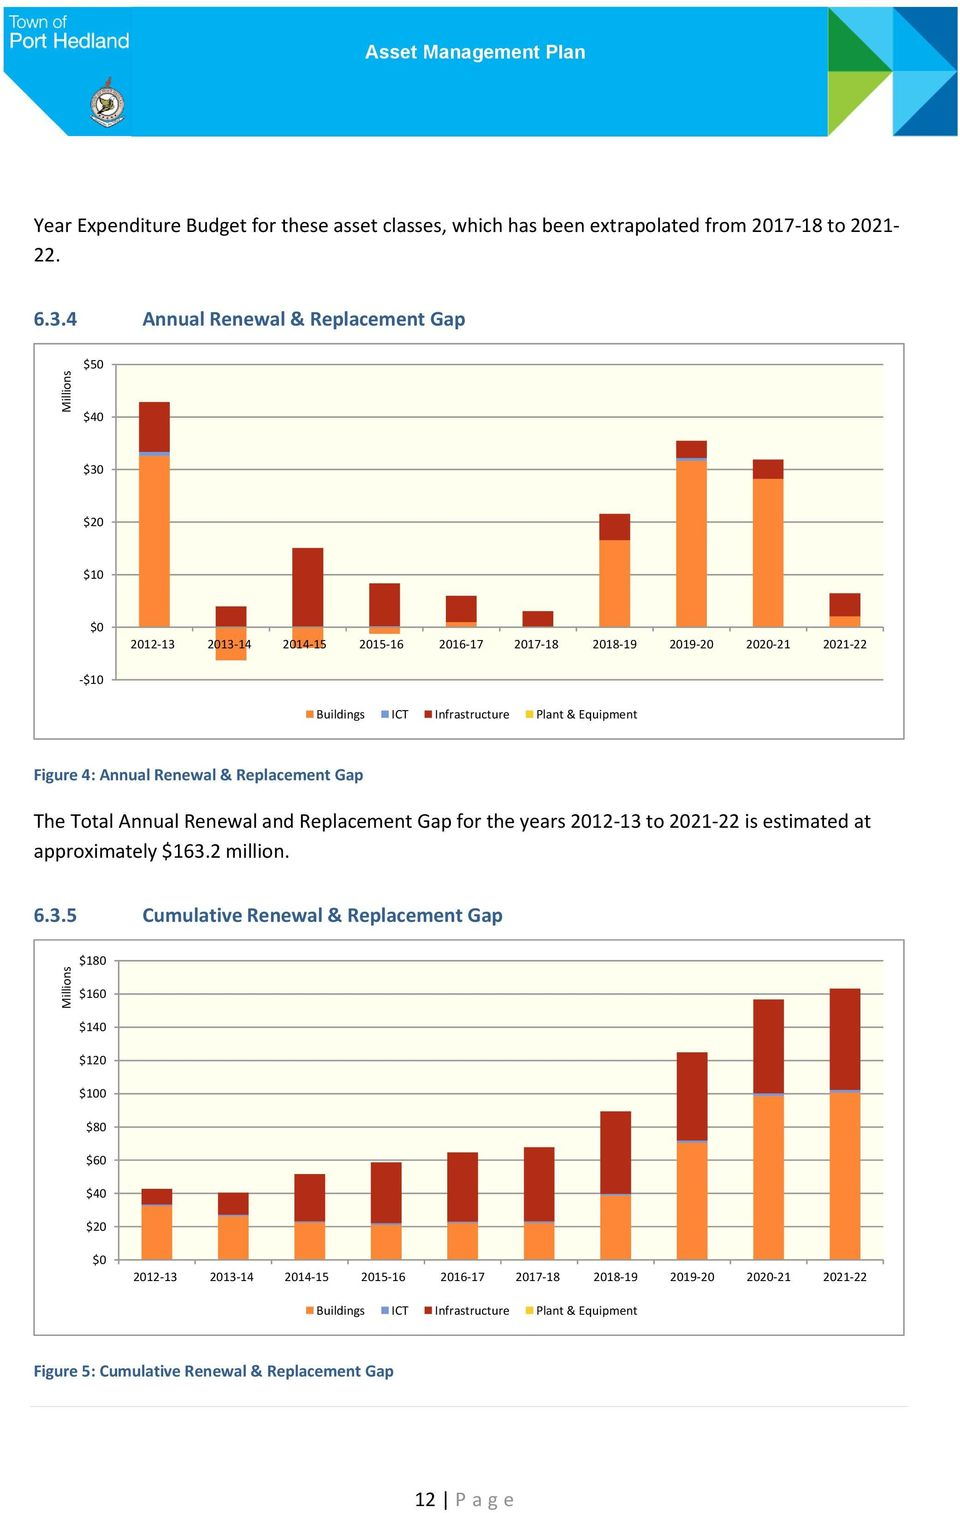 Figure 4: Annual Renewal & Replacement Gap The Total Annual Renewal and Replacement Gap for the years 2012-13